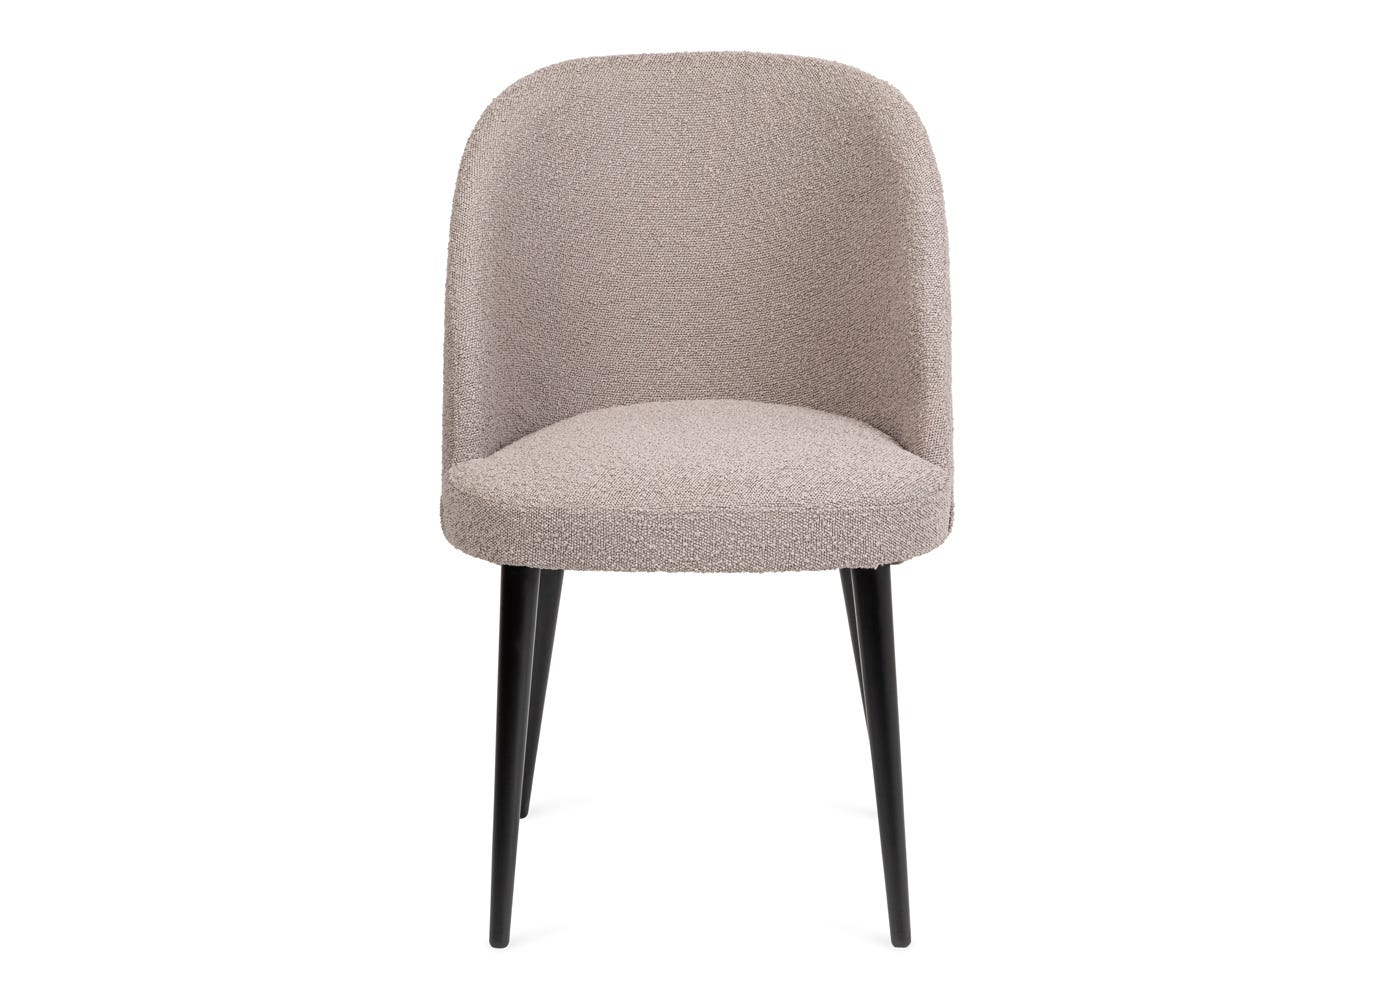 As shown: Austen dining chair grey boucle - Front profile